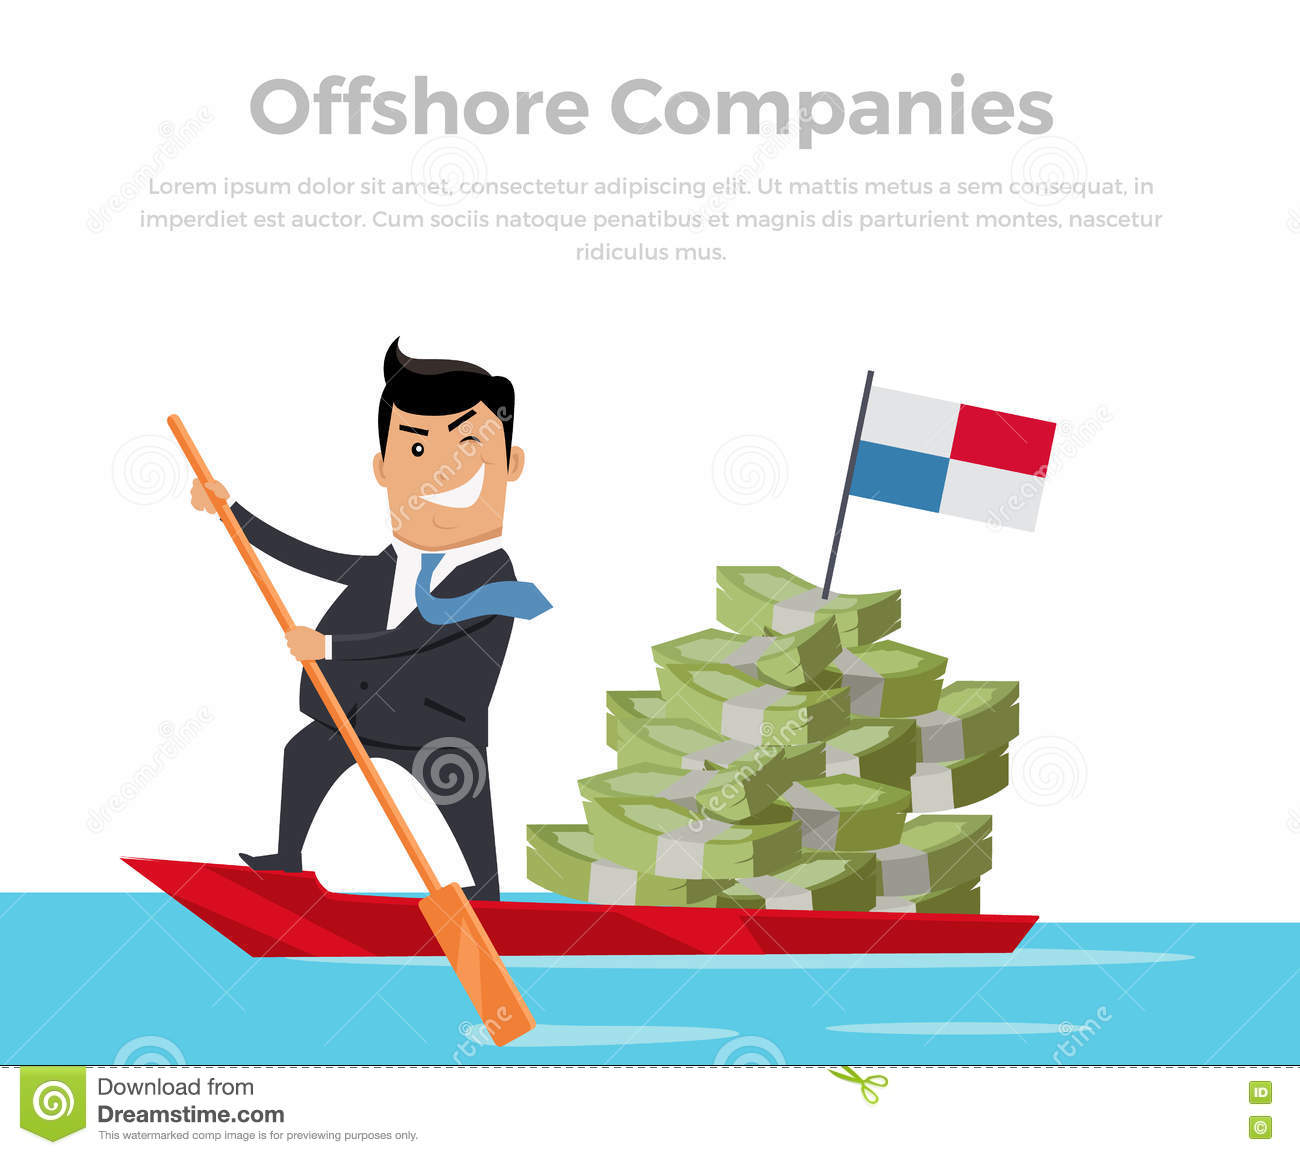 Why Some People Almost Always Make/Save Money With Home Of Offshore